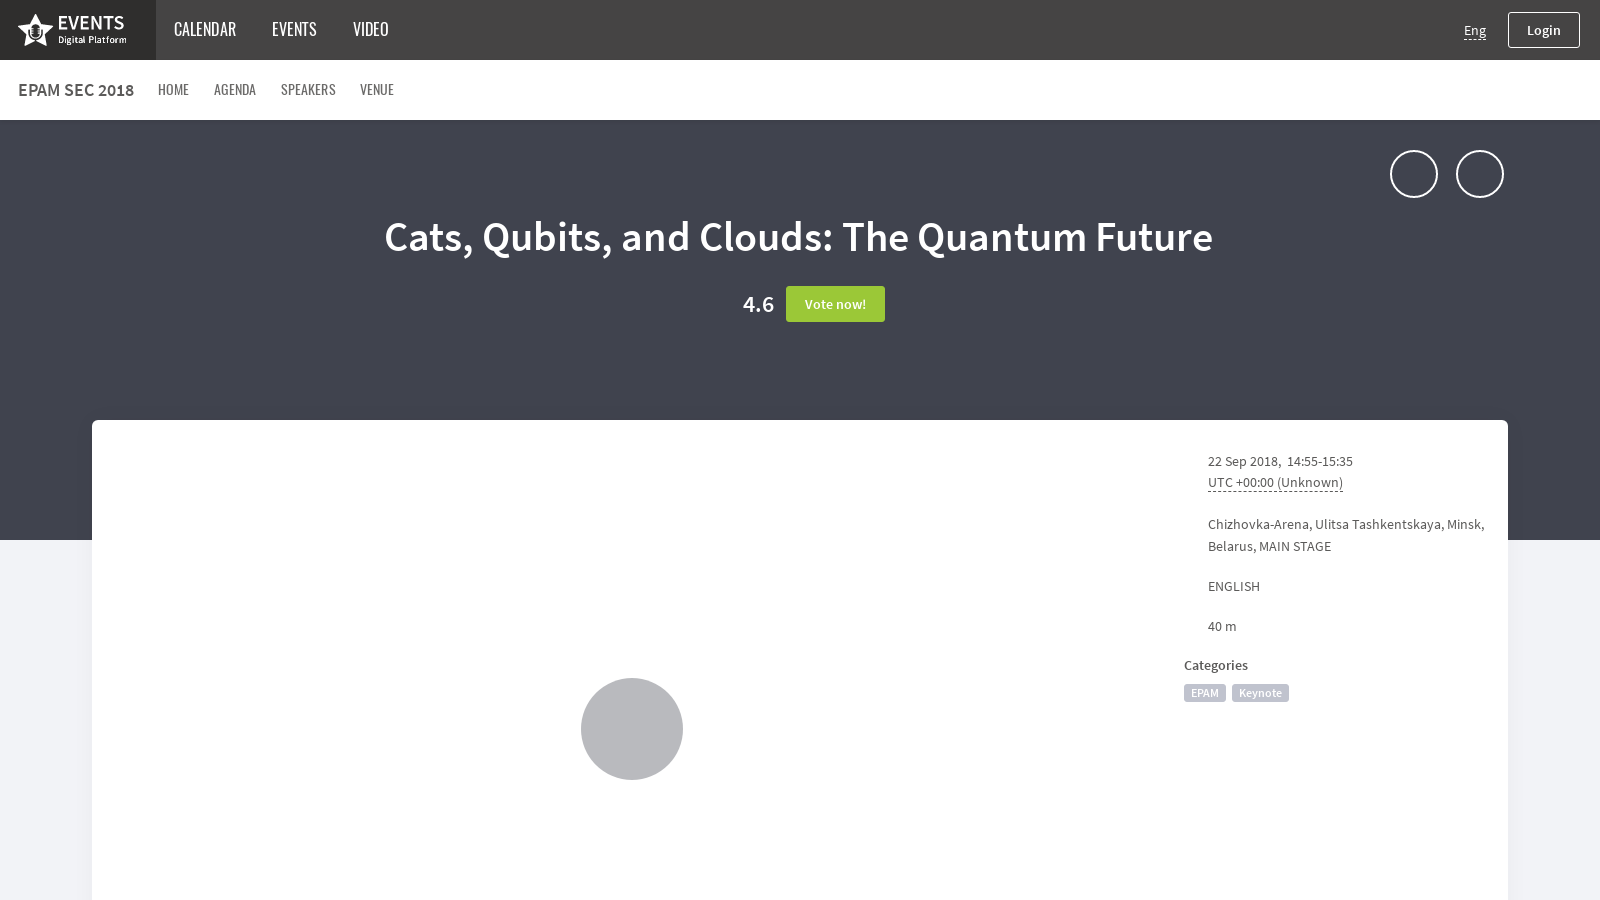 Cats, Qubits, and Clouds - 